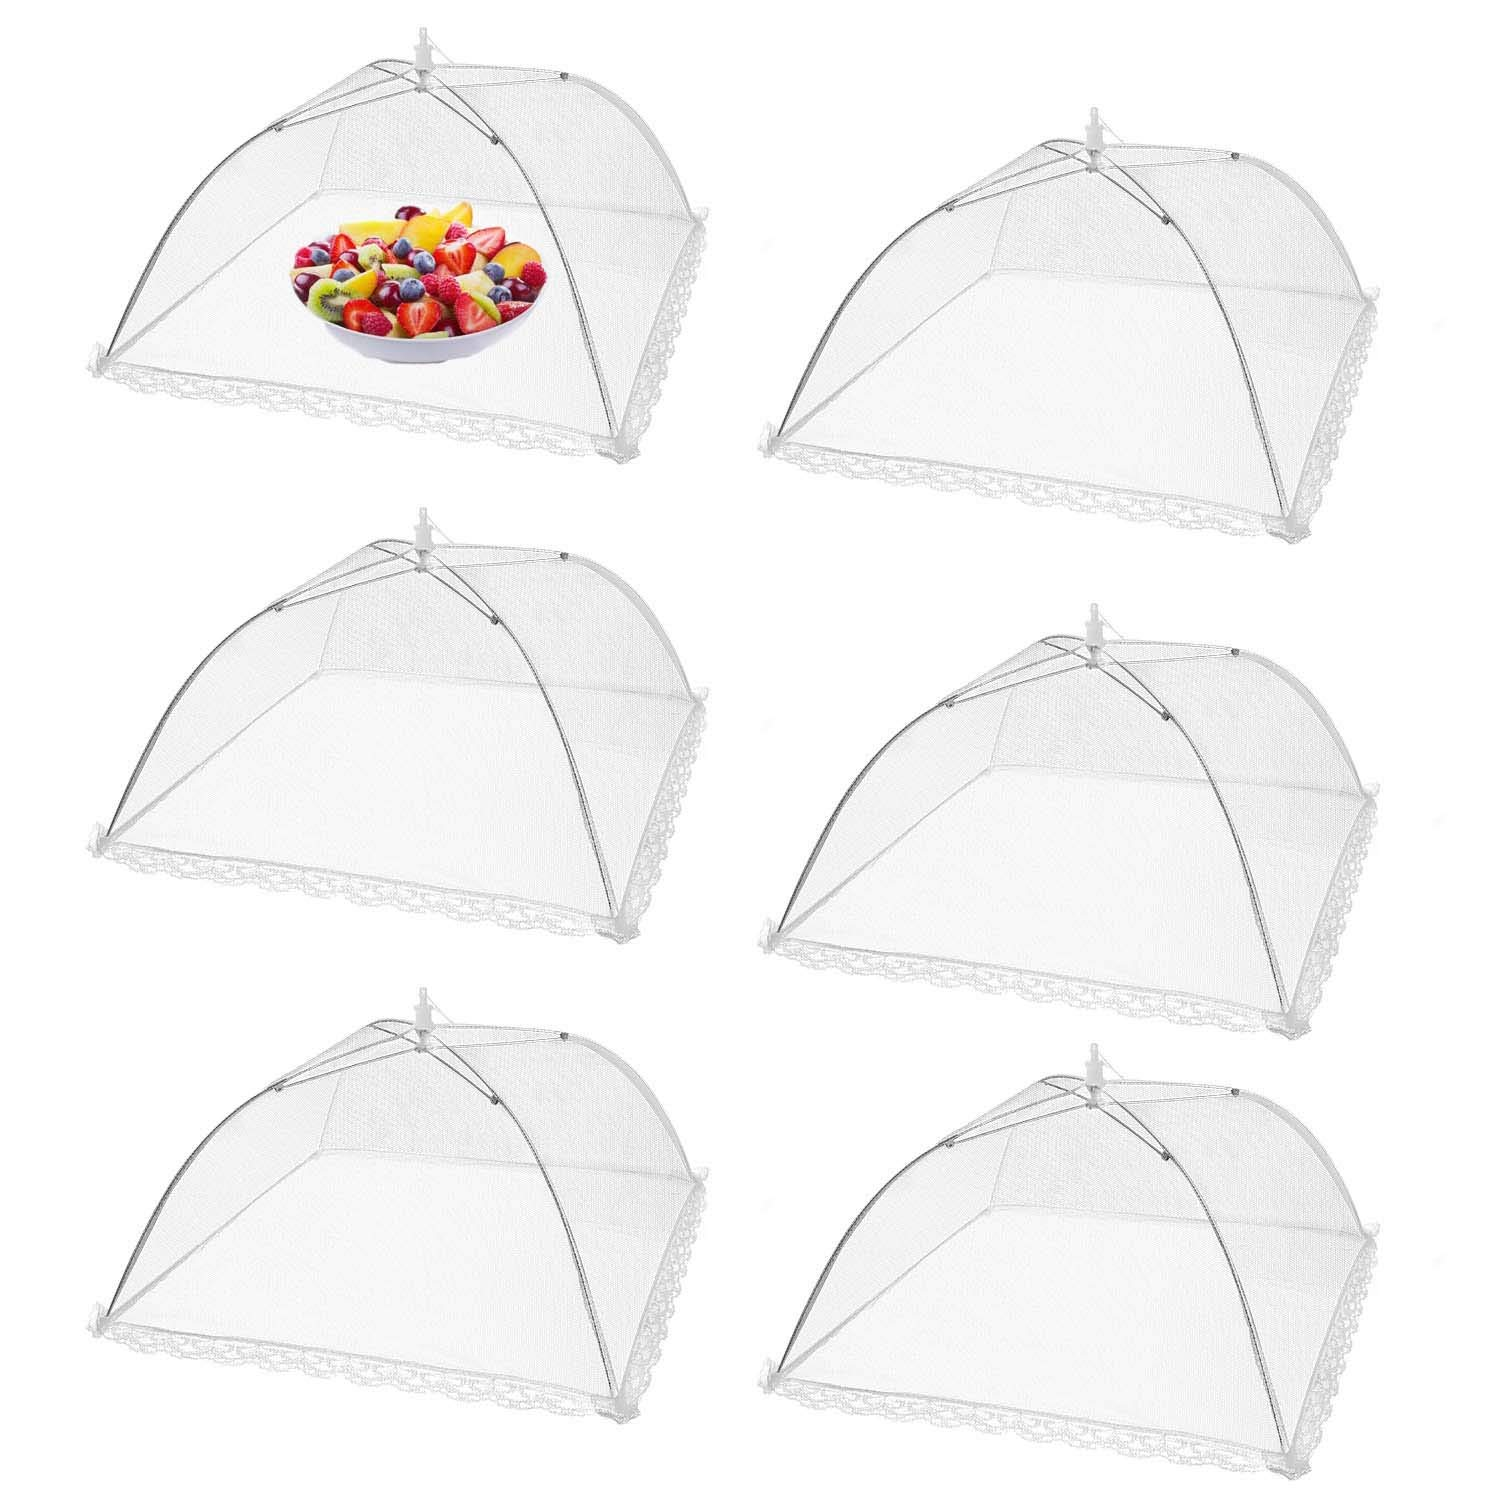 GRAWILLE 6 Pack Pop-up Mesh Food Cover 18x18 Inches Mesh Screen Food Cover Canopy Tents Table Cover for Party Panic BBQ Outdoor Indoor